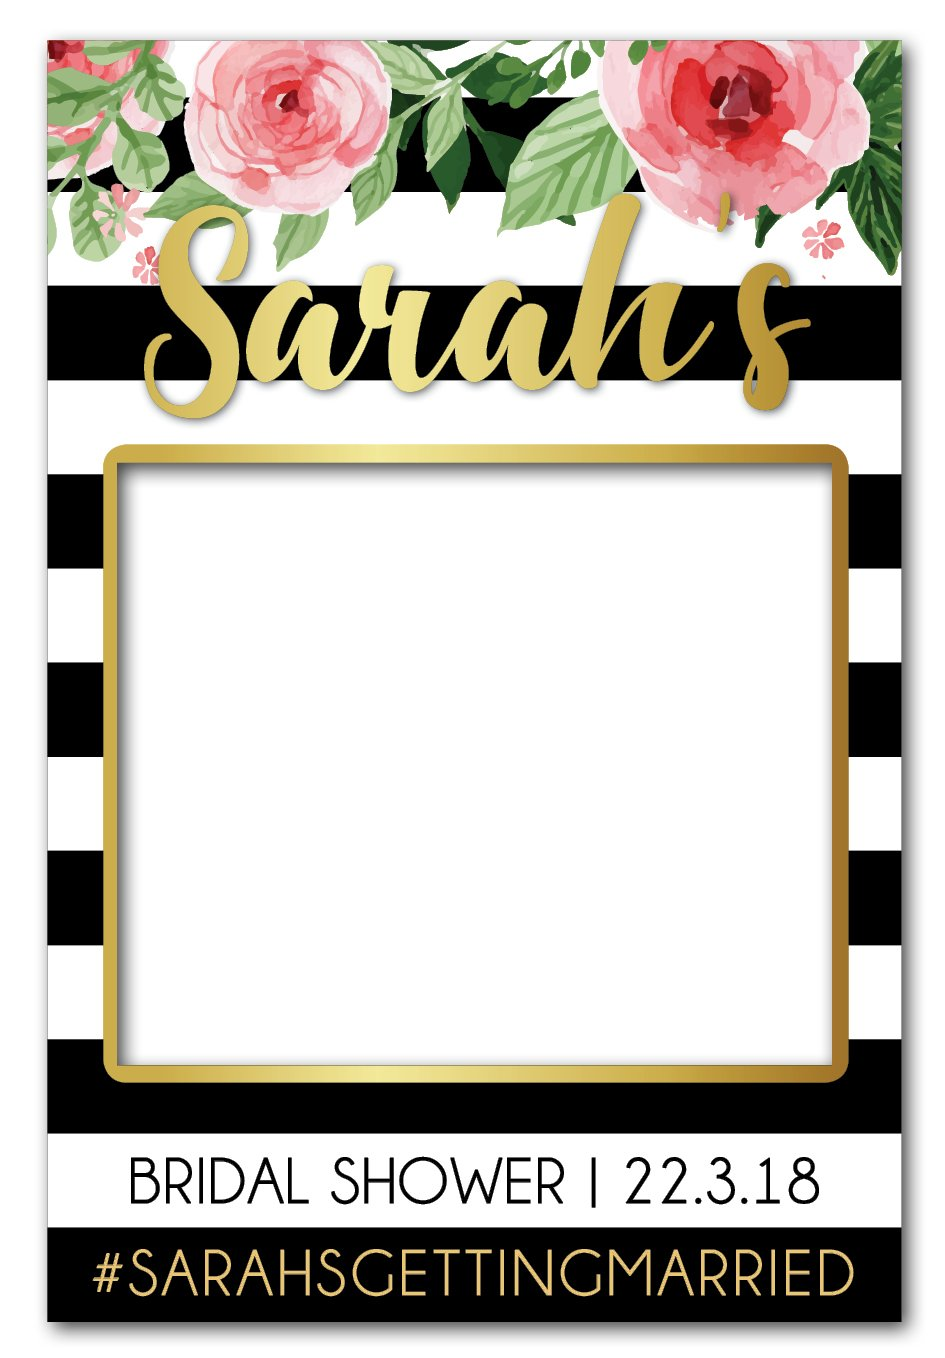 Flowers + Stripes Hens Party Photo Booth Frame (80 x 110 cm).